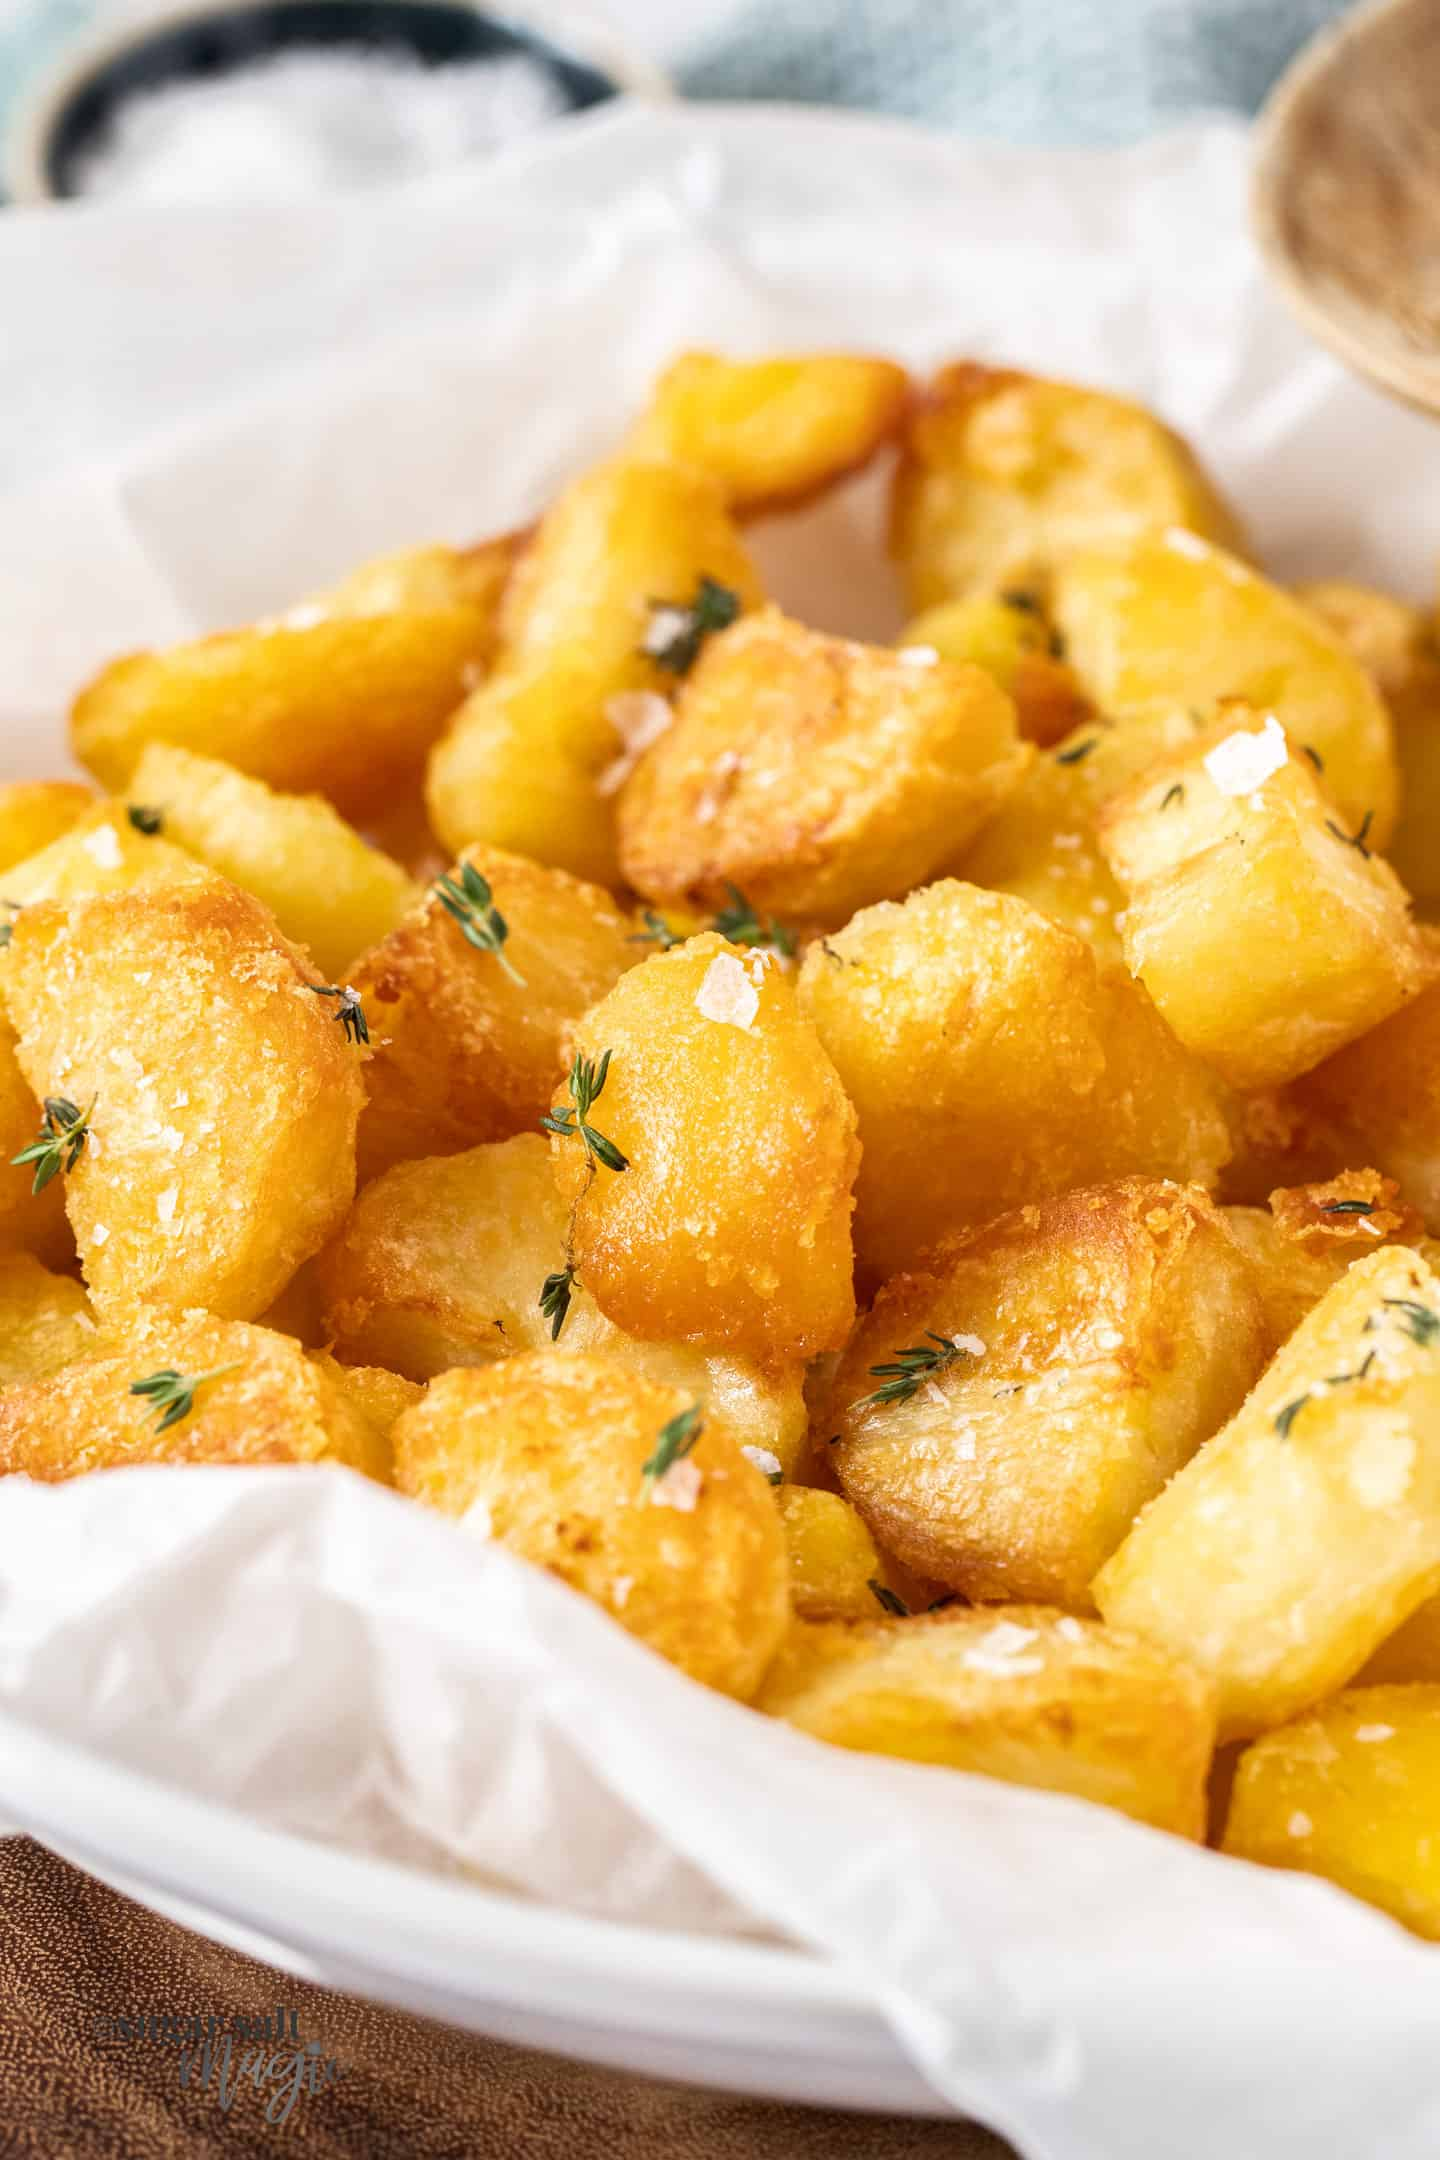 Crunchy roast potatoes with thyme and salt flakes in a white dish.